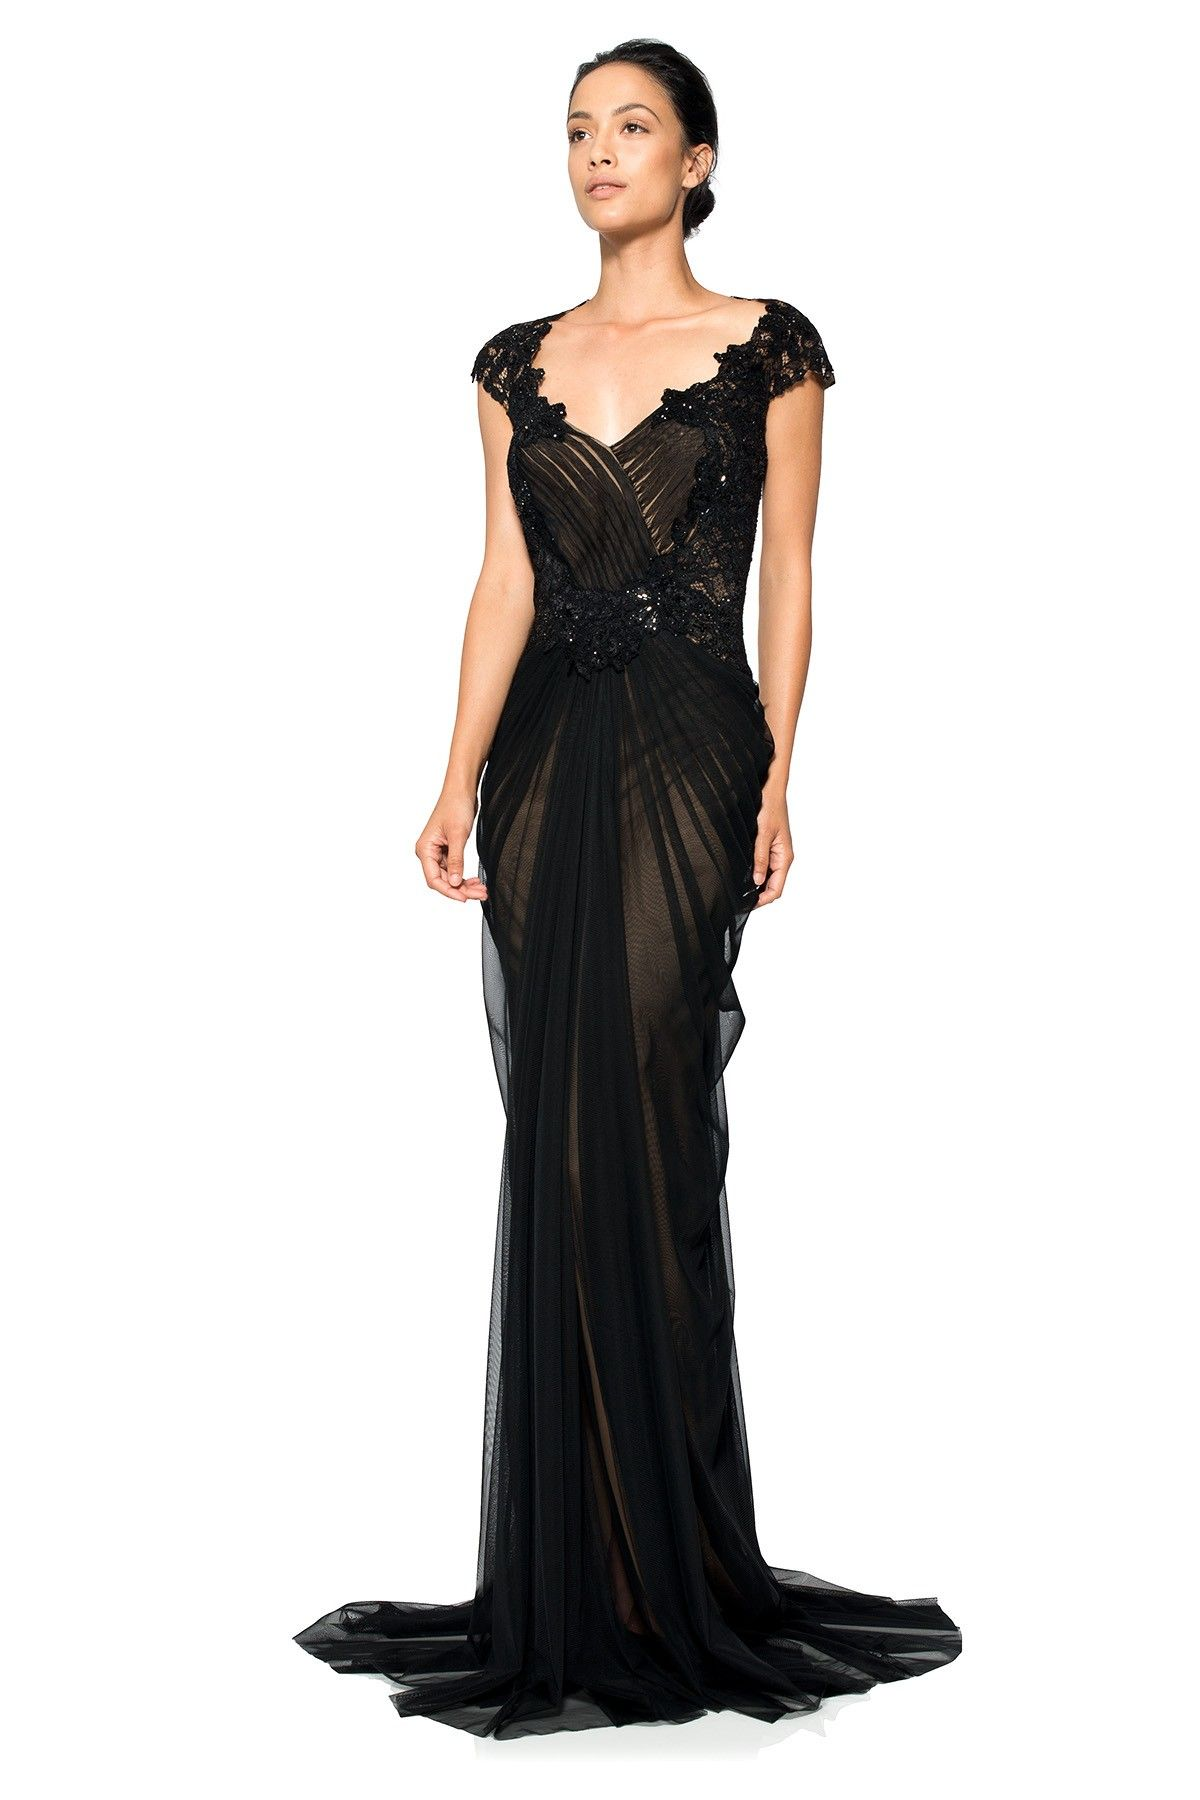 Hand-Beaded Lace and Draped Tulle Gown | Tadashi Shoji | Wedding ...